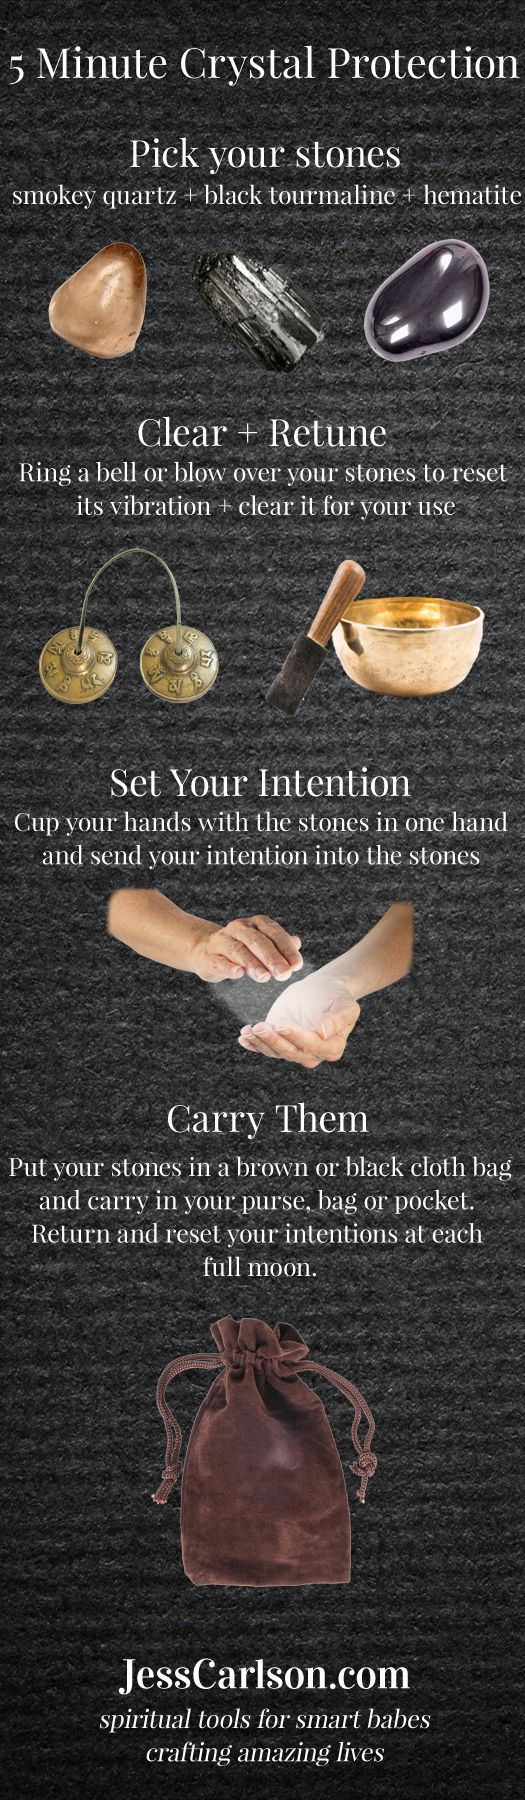 Here's some more 5 minute magic, this time for protection using crystals! || 5 Minute Crystal Protection - Jess Carlson: